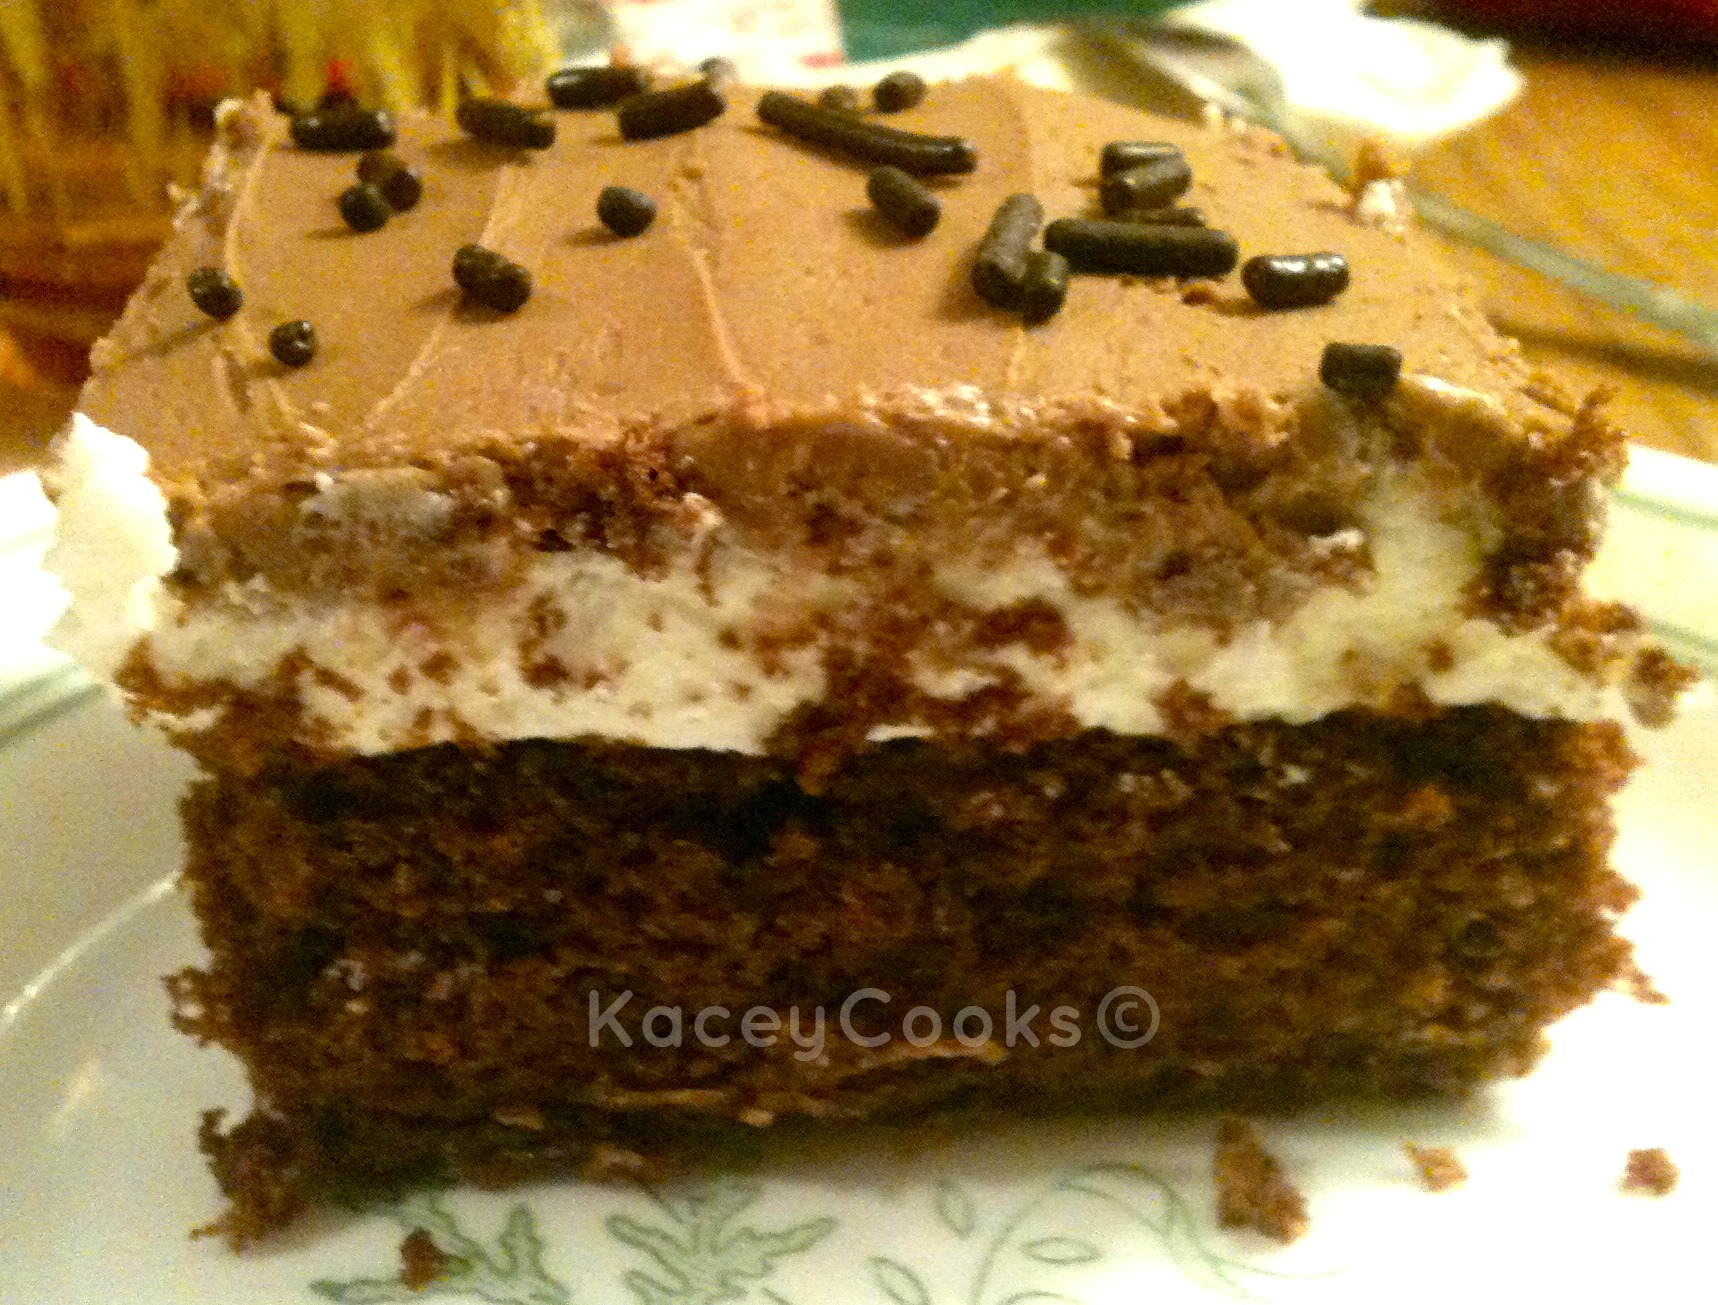 Tastes just like the Hostess snack cake- it's Ho-Ho cake. My version is organic and GMO-Free! Chocolate cake with a creamy white filling and a yummy chcolate icing tops off the best midnight snack you'll ever have! #Real Food Girl: Unmodified